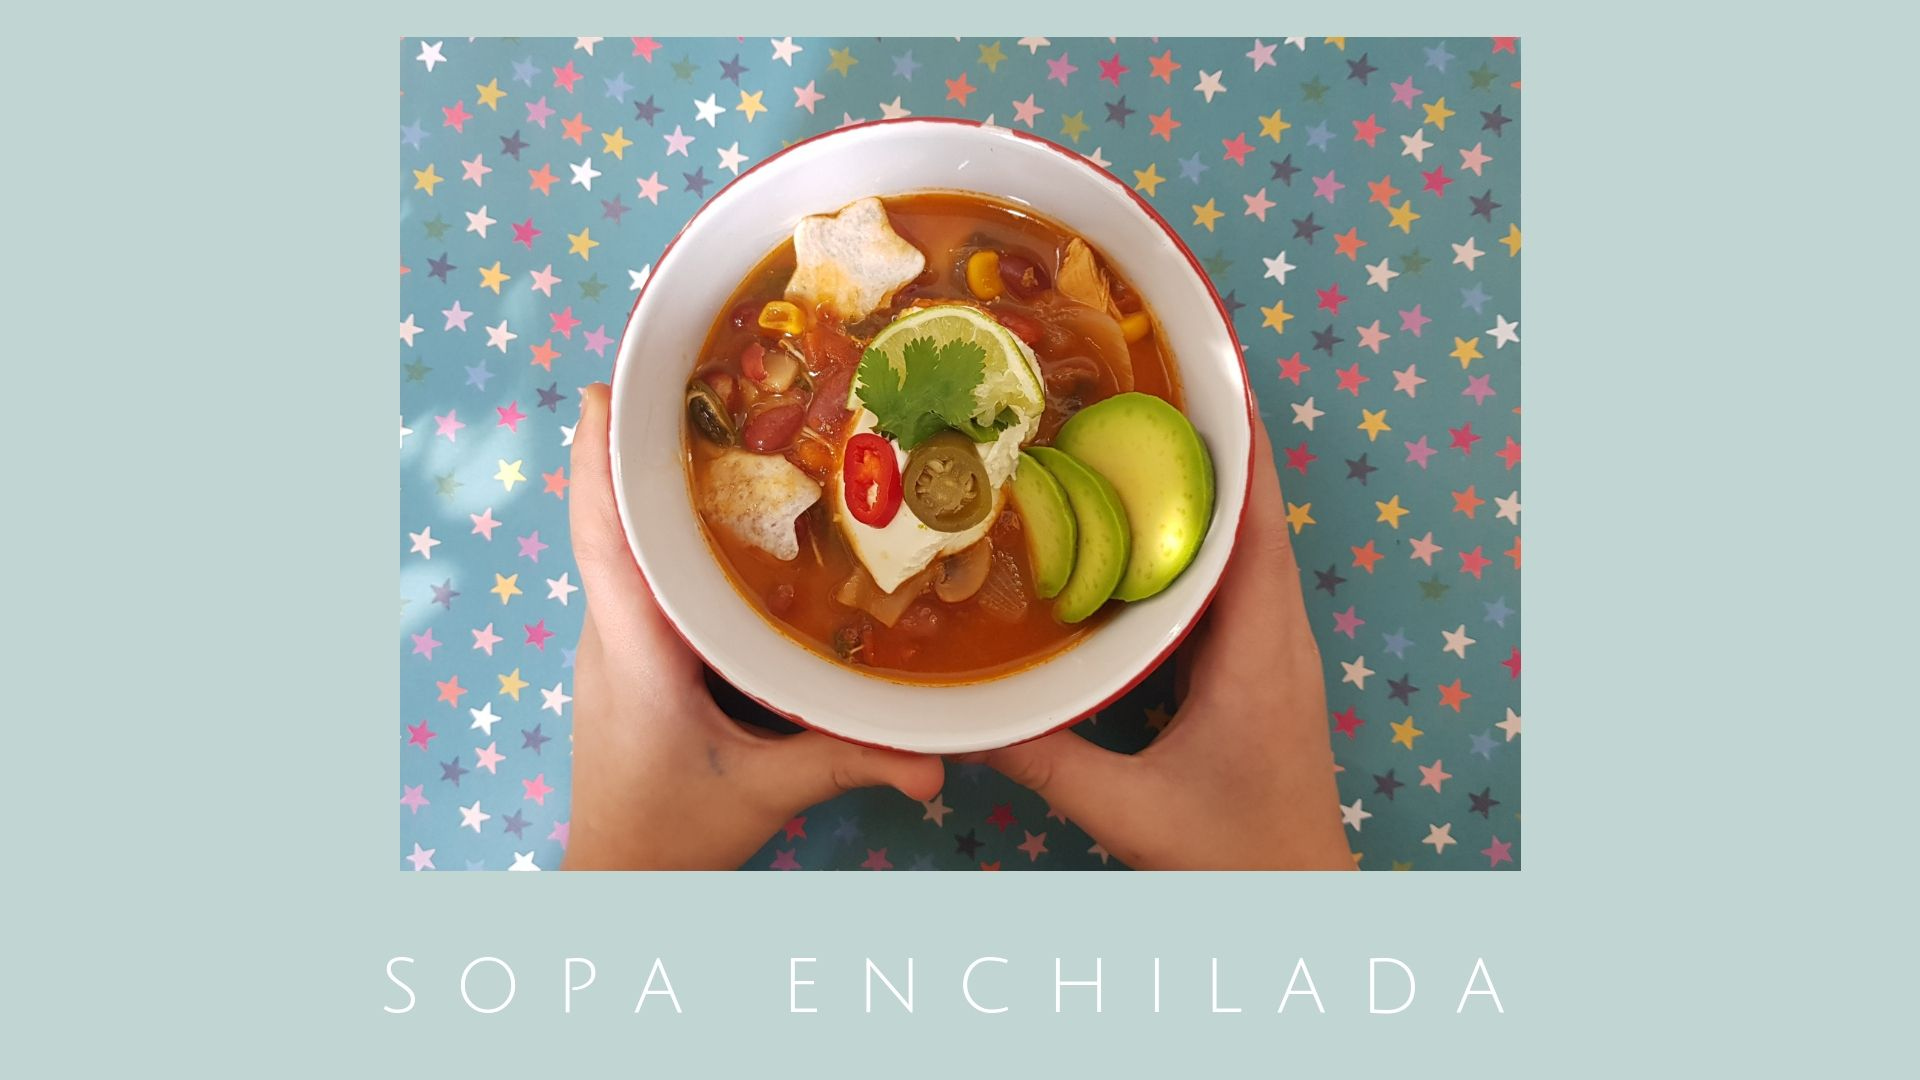 Sopa enchilada de pollo / Receta familiar